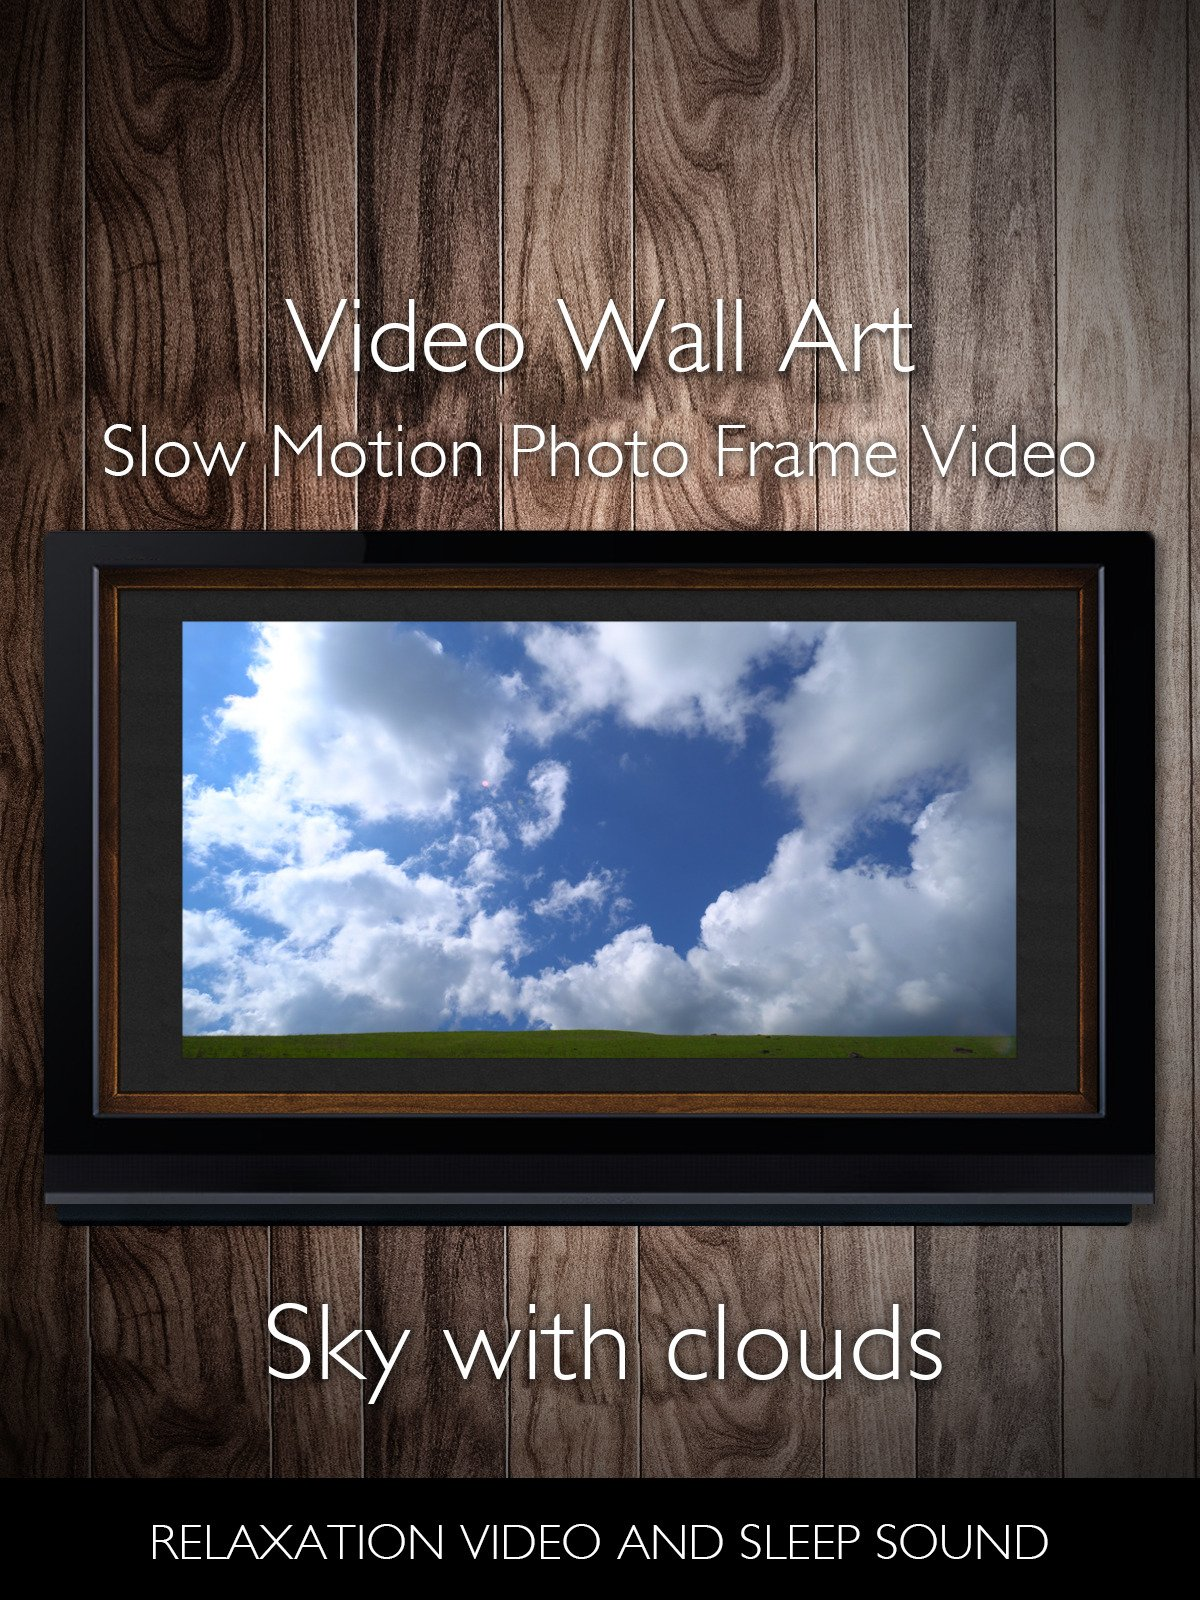 Video Wall Art Slow Motion Sky with Clouds Photo Frame Video Relaxation Video and Sleep Sound